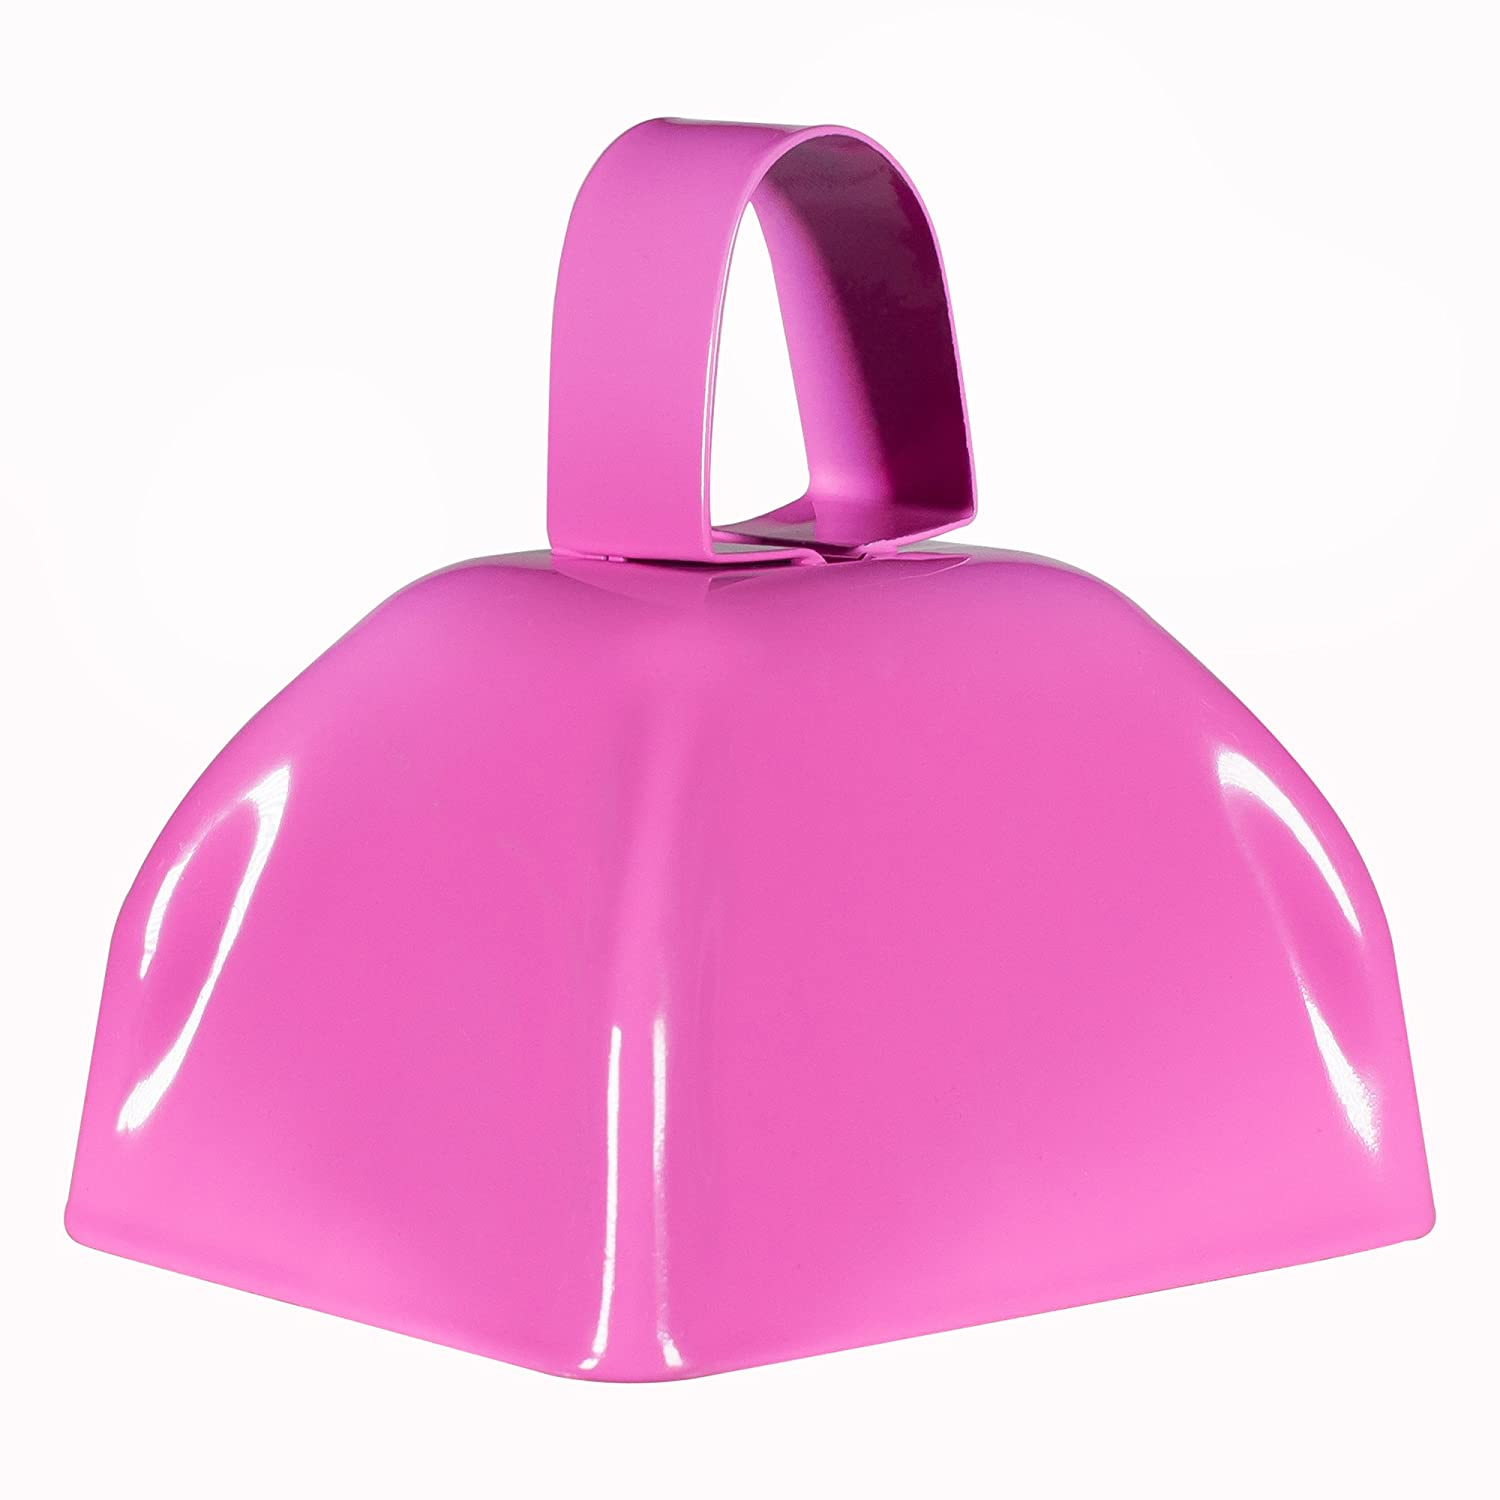 Amazon.com: Metal Cowbells with Handles 3 inch Novelty Noise Maker ...